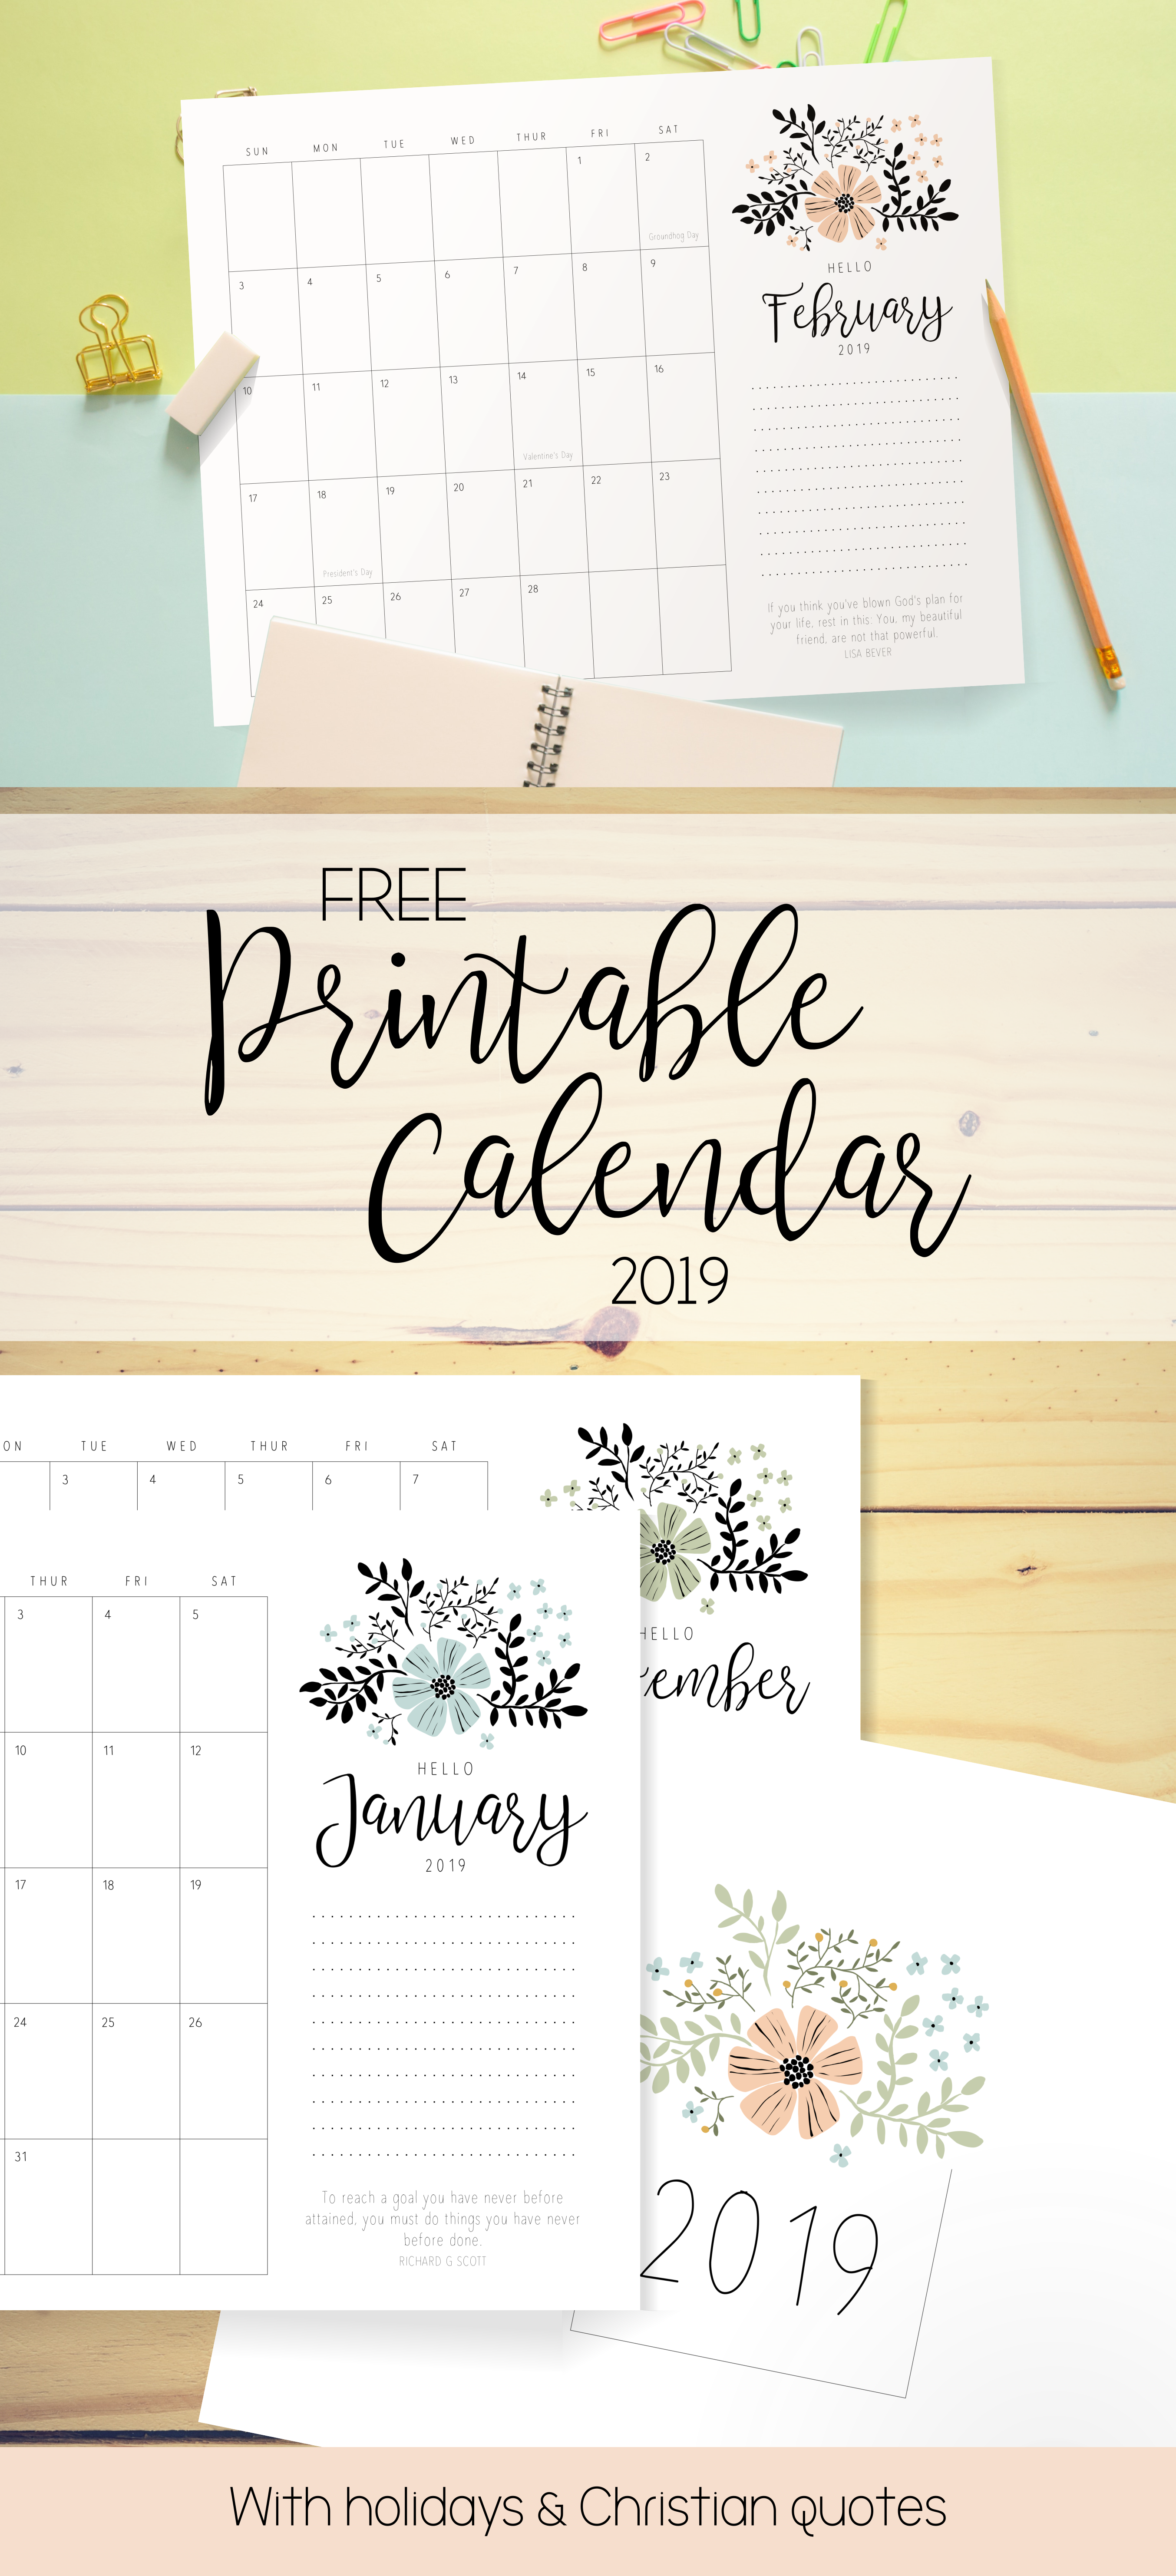 Free Printable Calendar With Holidays And Lds Quotes Floral And Minimal